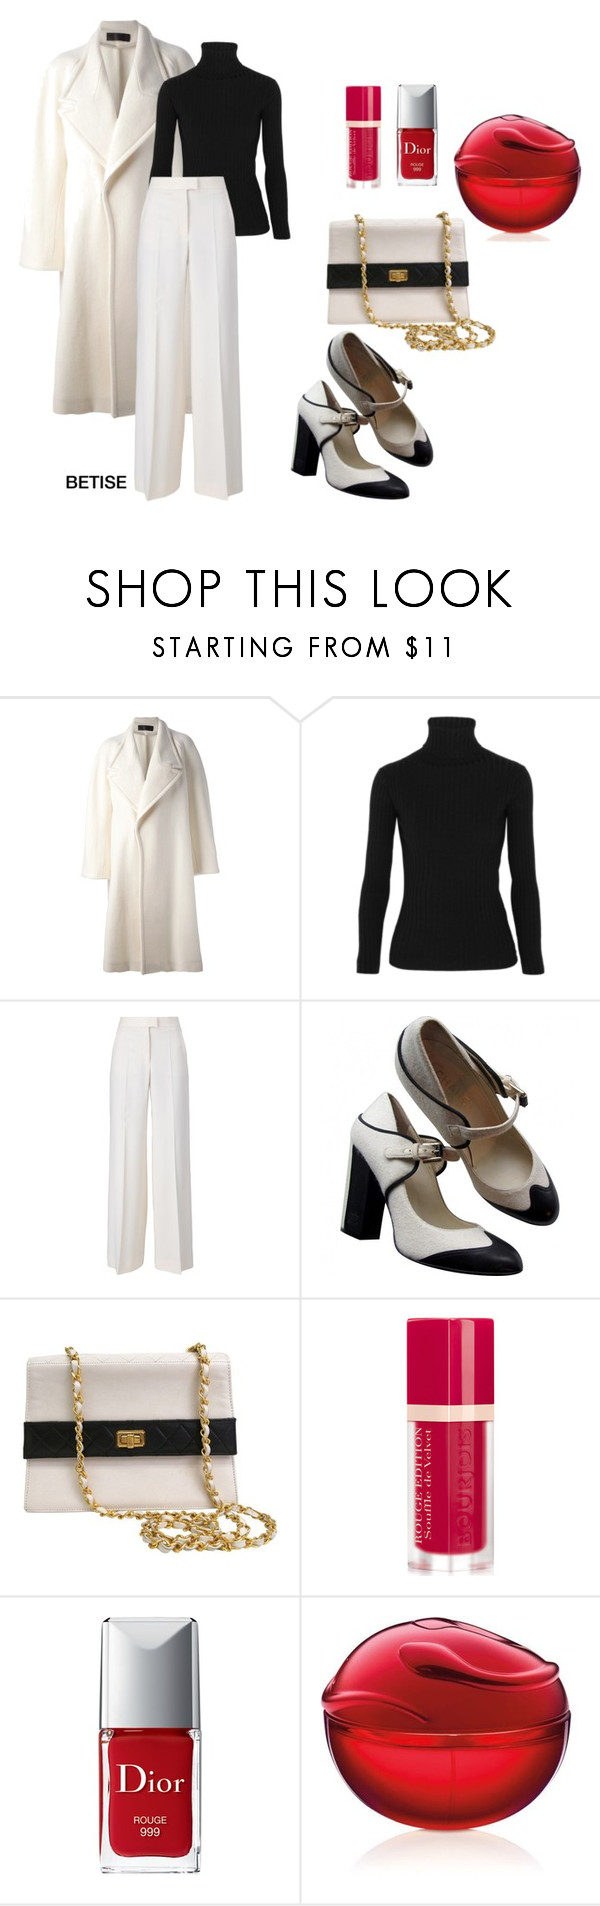 """""""WHITE  &   BLACK !!"""" by betty-sanga ❤ liked on Polyvore featuring Haider Ackermann, Acne Studios, STELLA McCARTNEY, Chanel, Bourjois, Christian Dior and DKNY"""